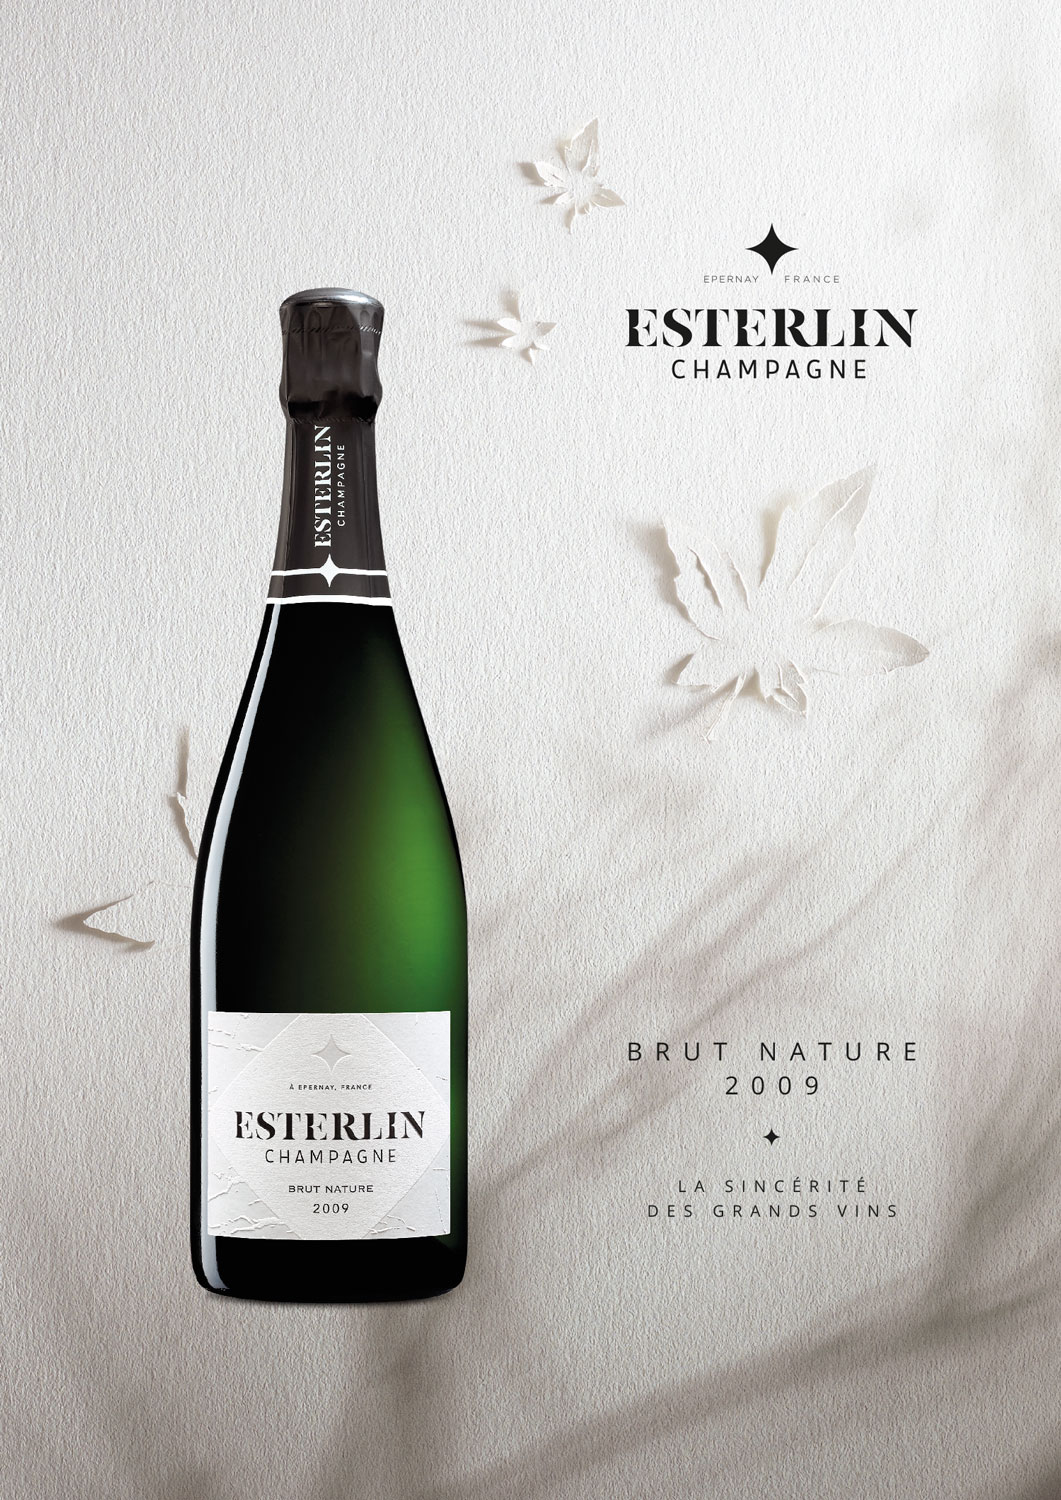 Esterlin Brut Nature 2009 Key Visual